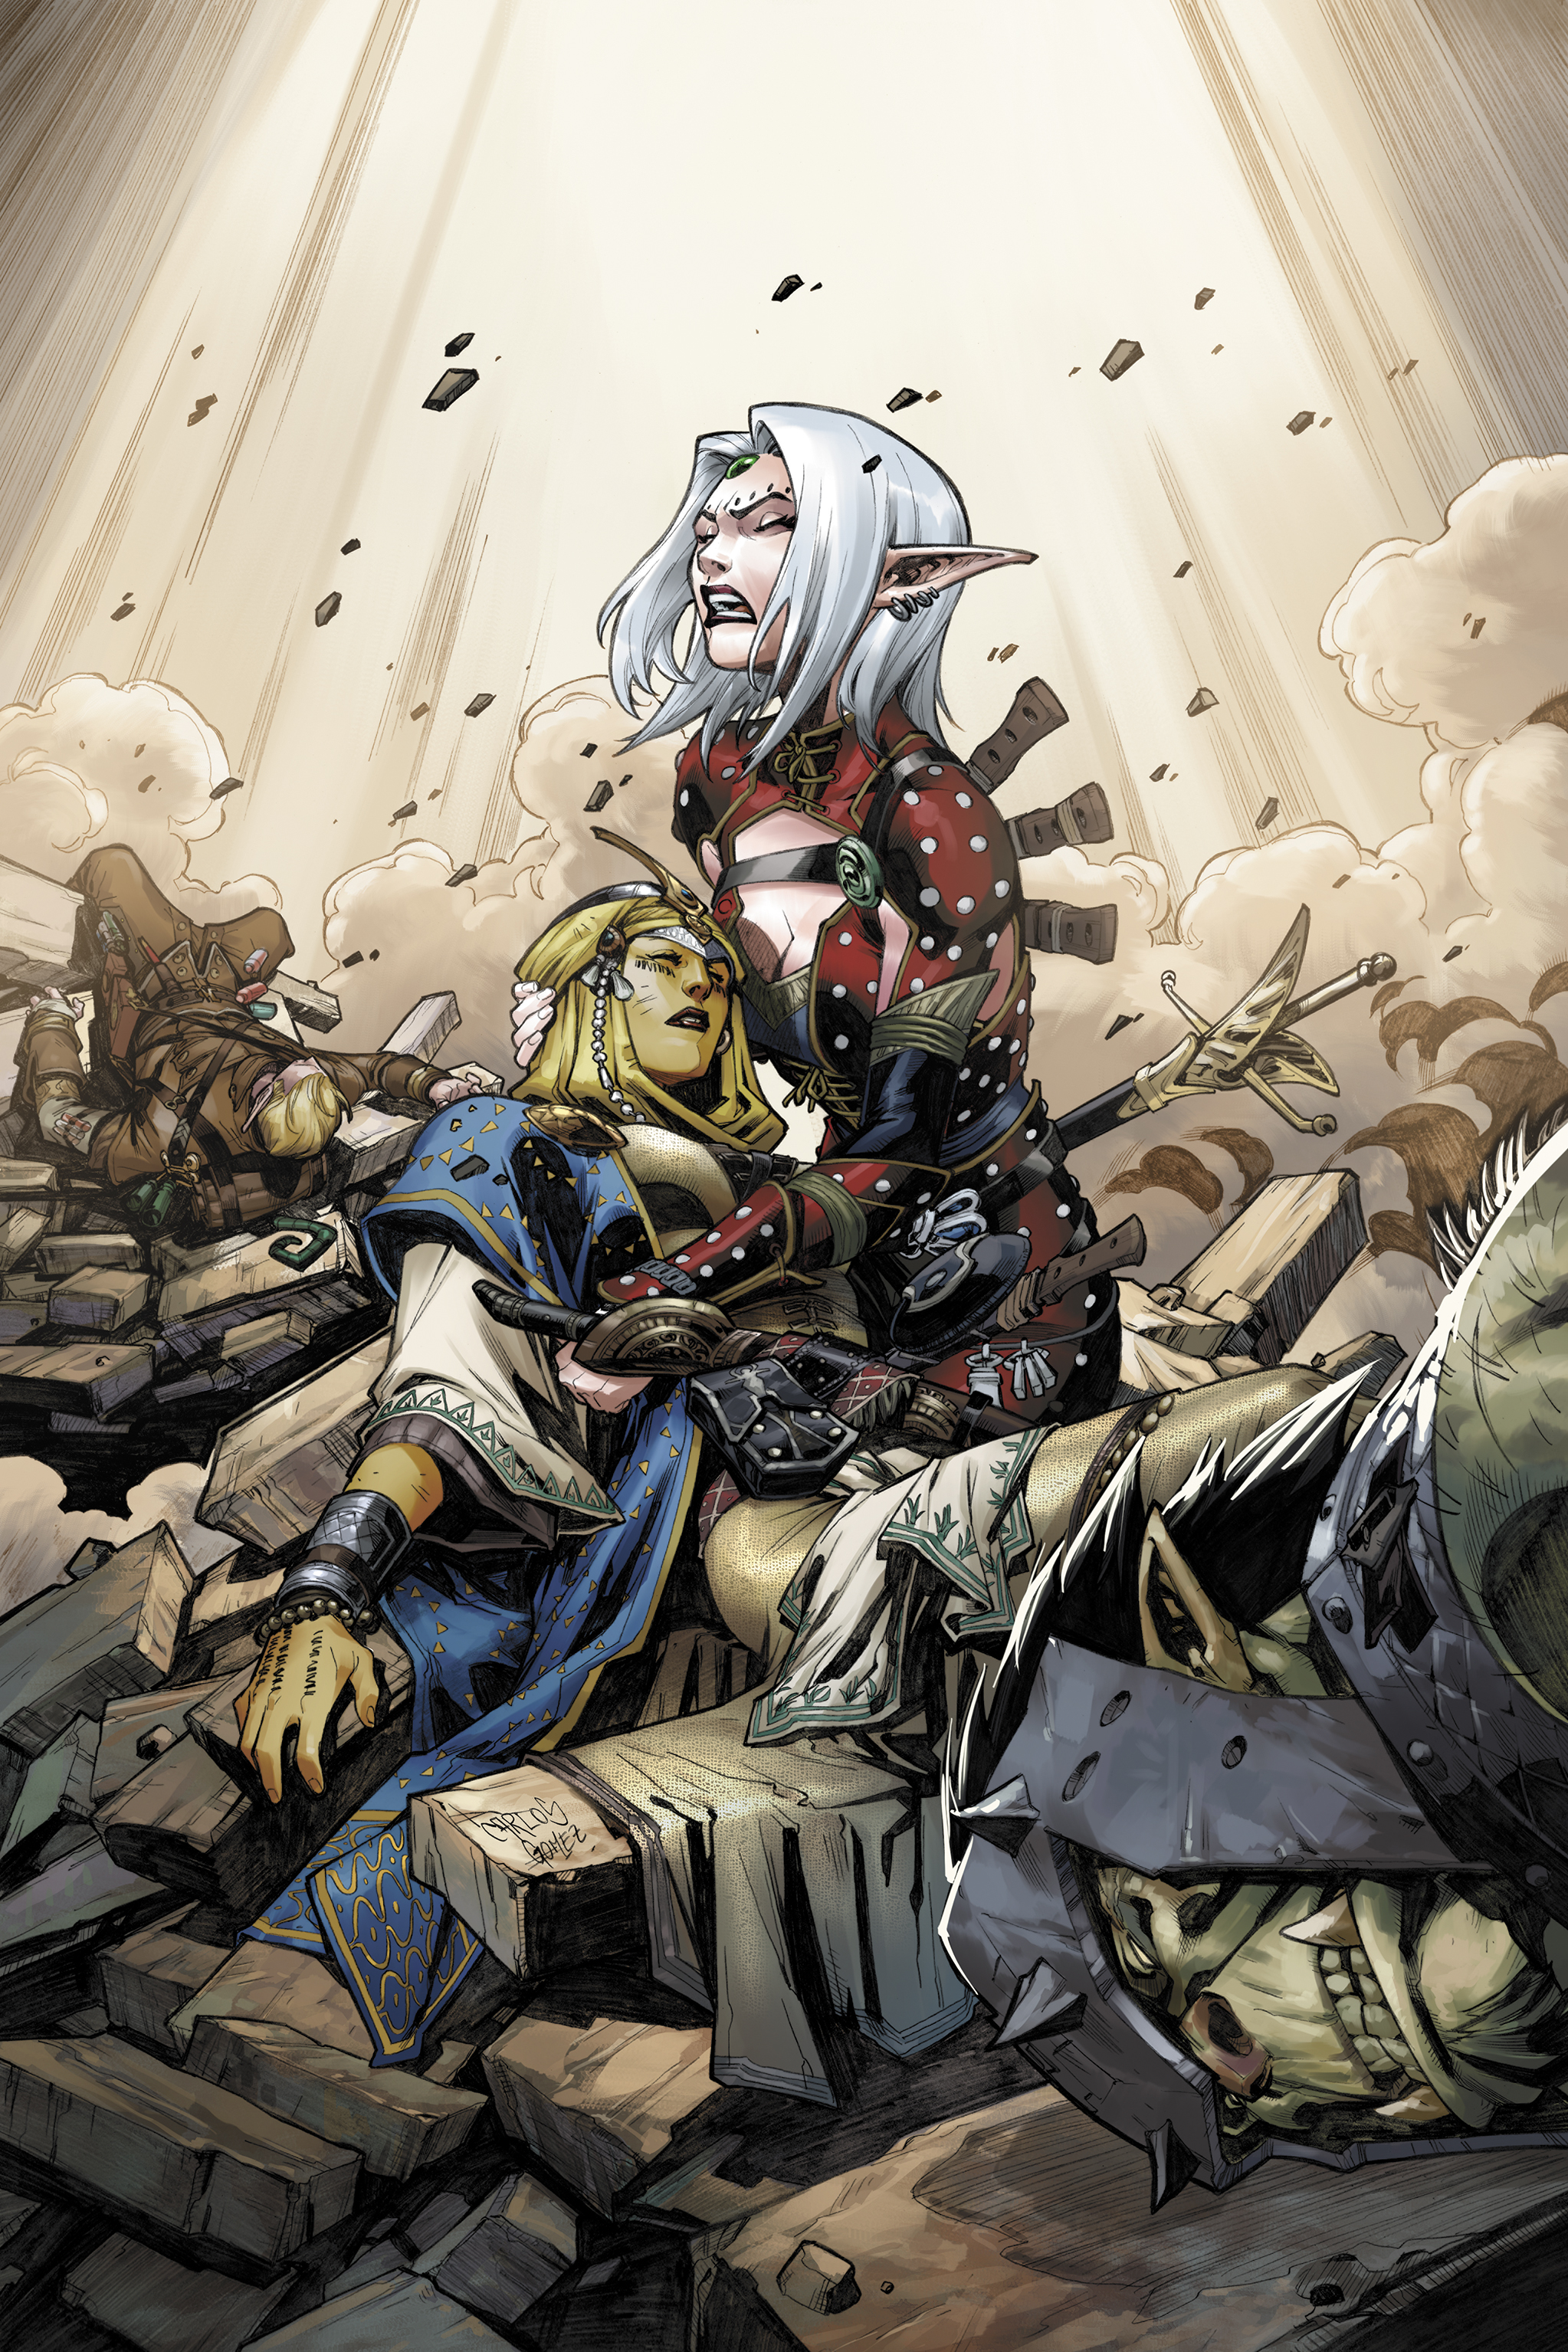 PATHFINDER: HOLLOW MOUNTAIN #3 COVER color by CarlosGomezArtist